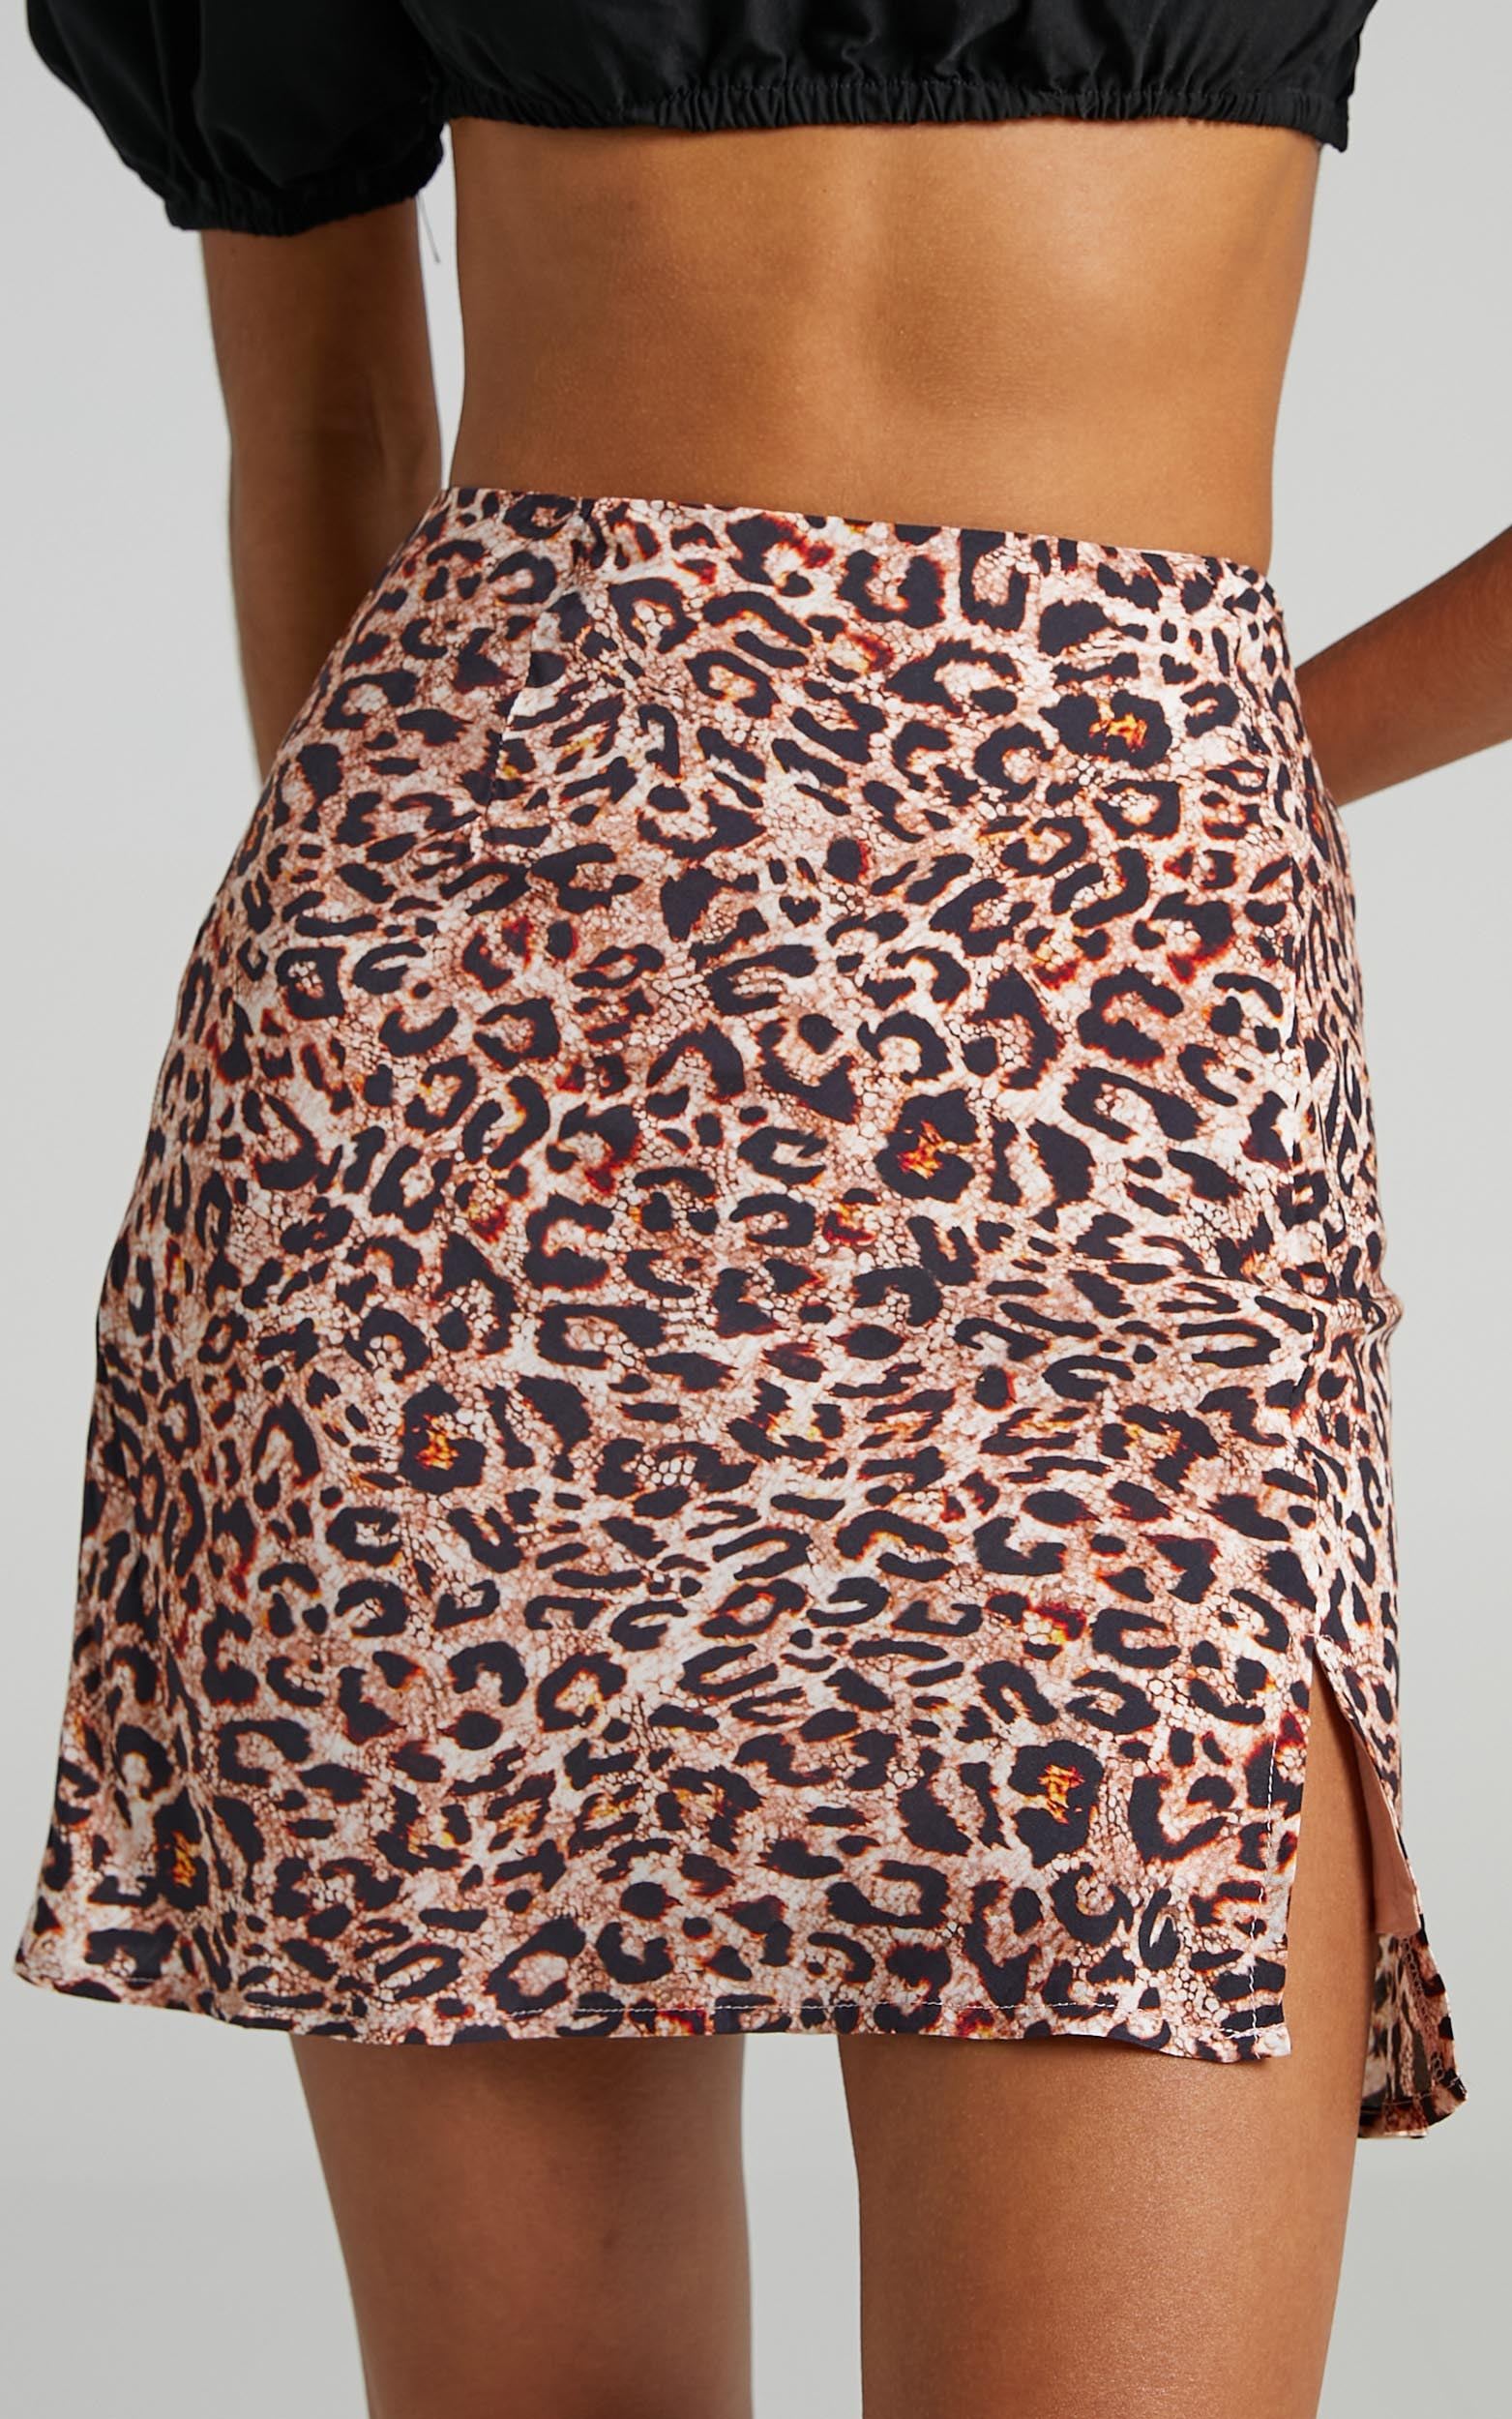 Stand In Line Skirt in Leopard - 06, BRN1, hi-res image number null